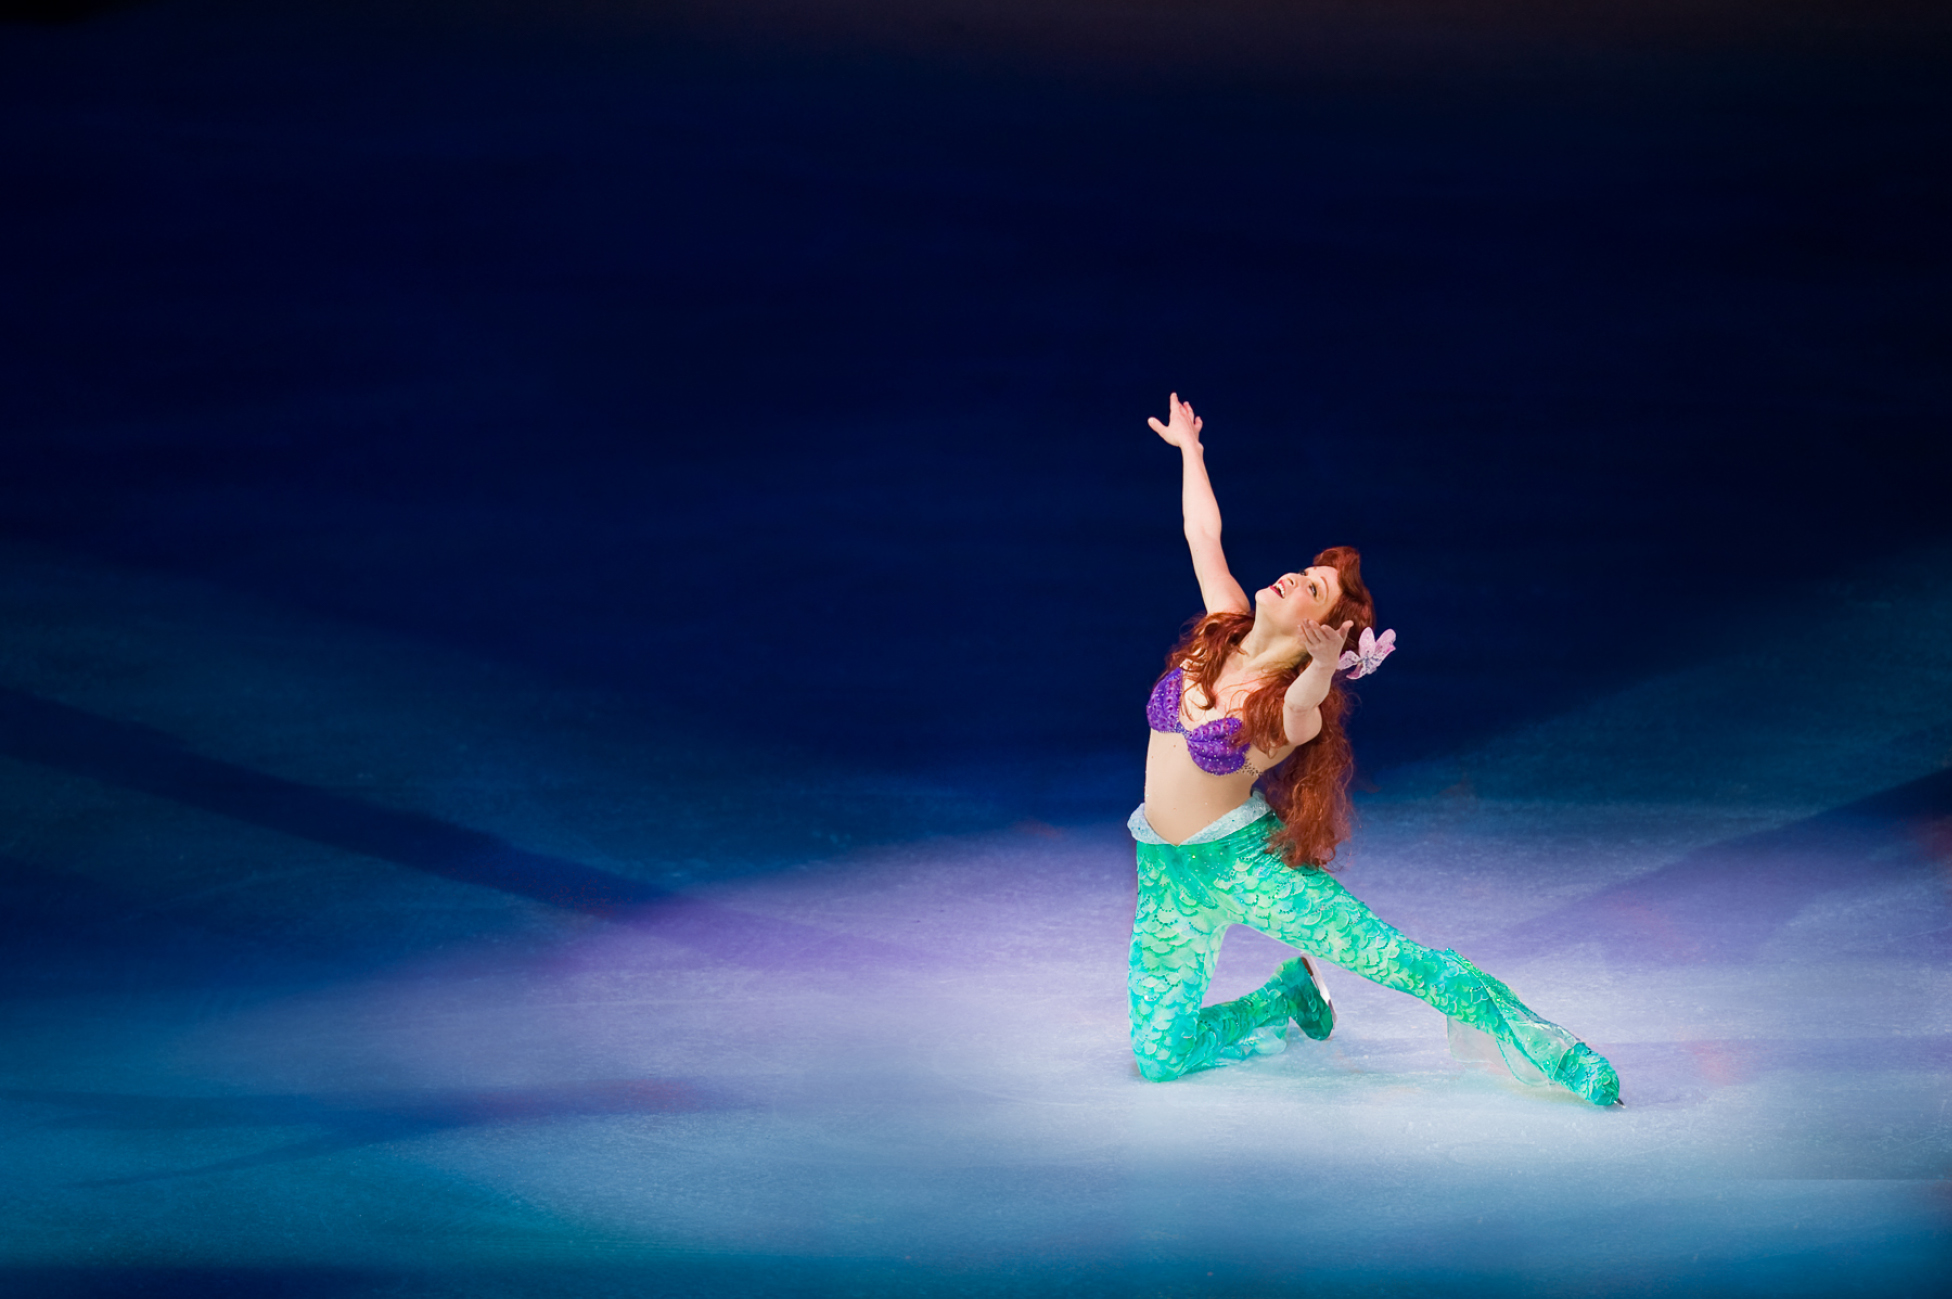 The Little Mermaid skating on Ice